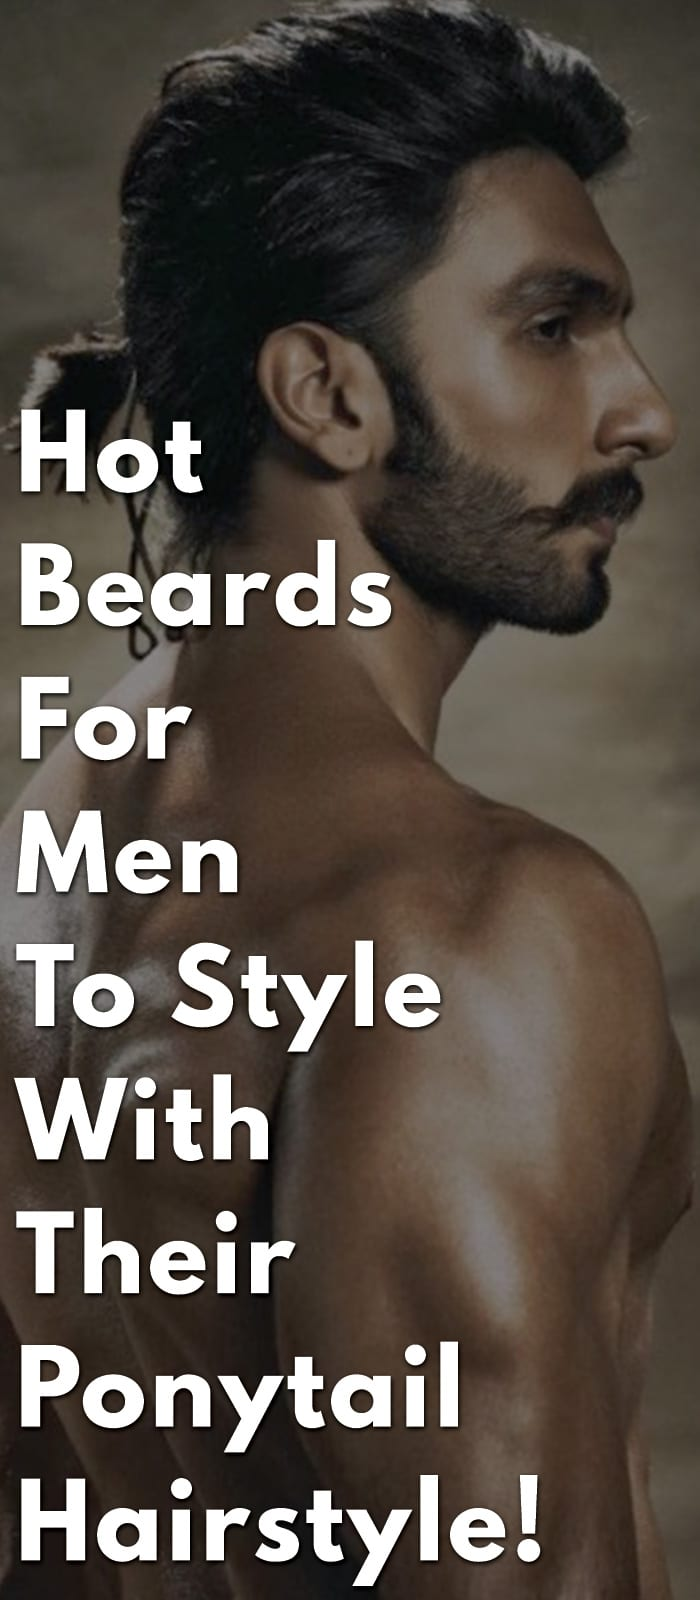 Hot-Beards-For-Men-To-Style-With-Their-Ponytail-Hairstyle!.